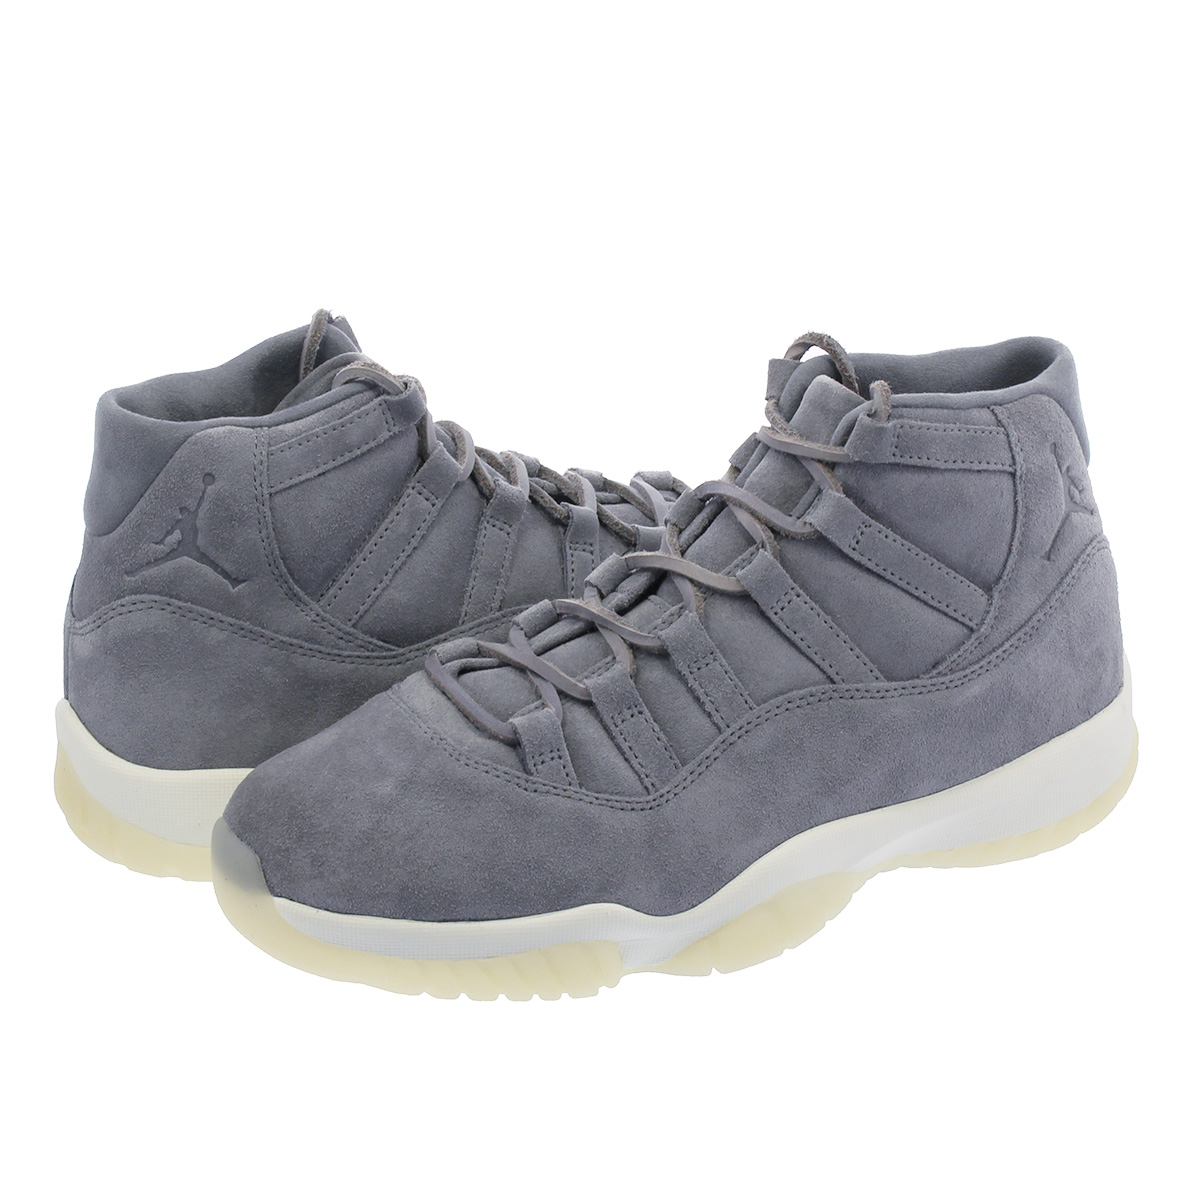 reputable site 3b63d 9ce36 NIKE AIR JORDAN 11 RETRO PRM Nike Air Jordan 11 nostalgic premium COOL  GREY/SAIL 914,433-003